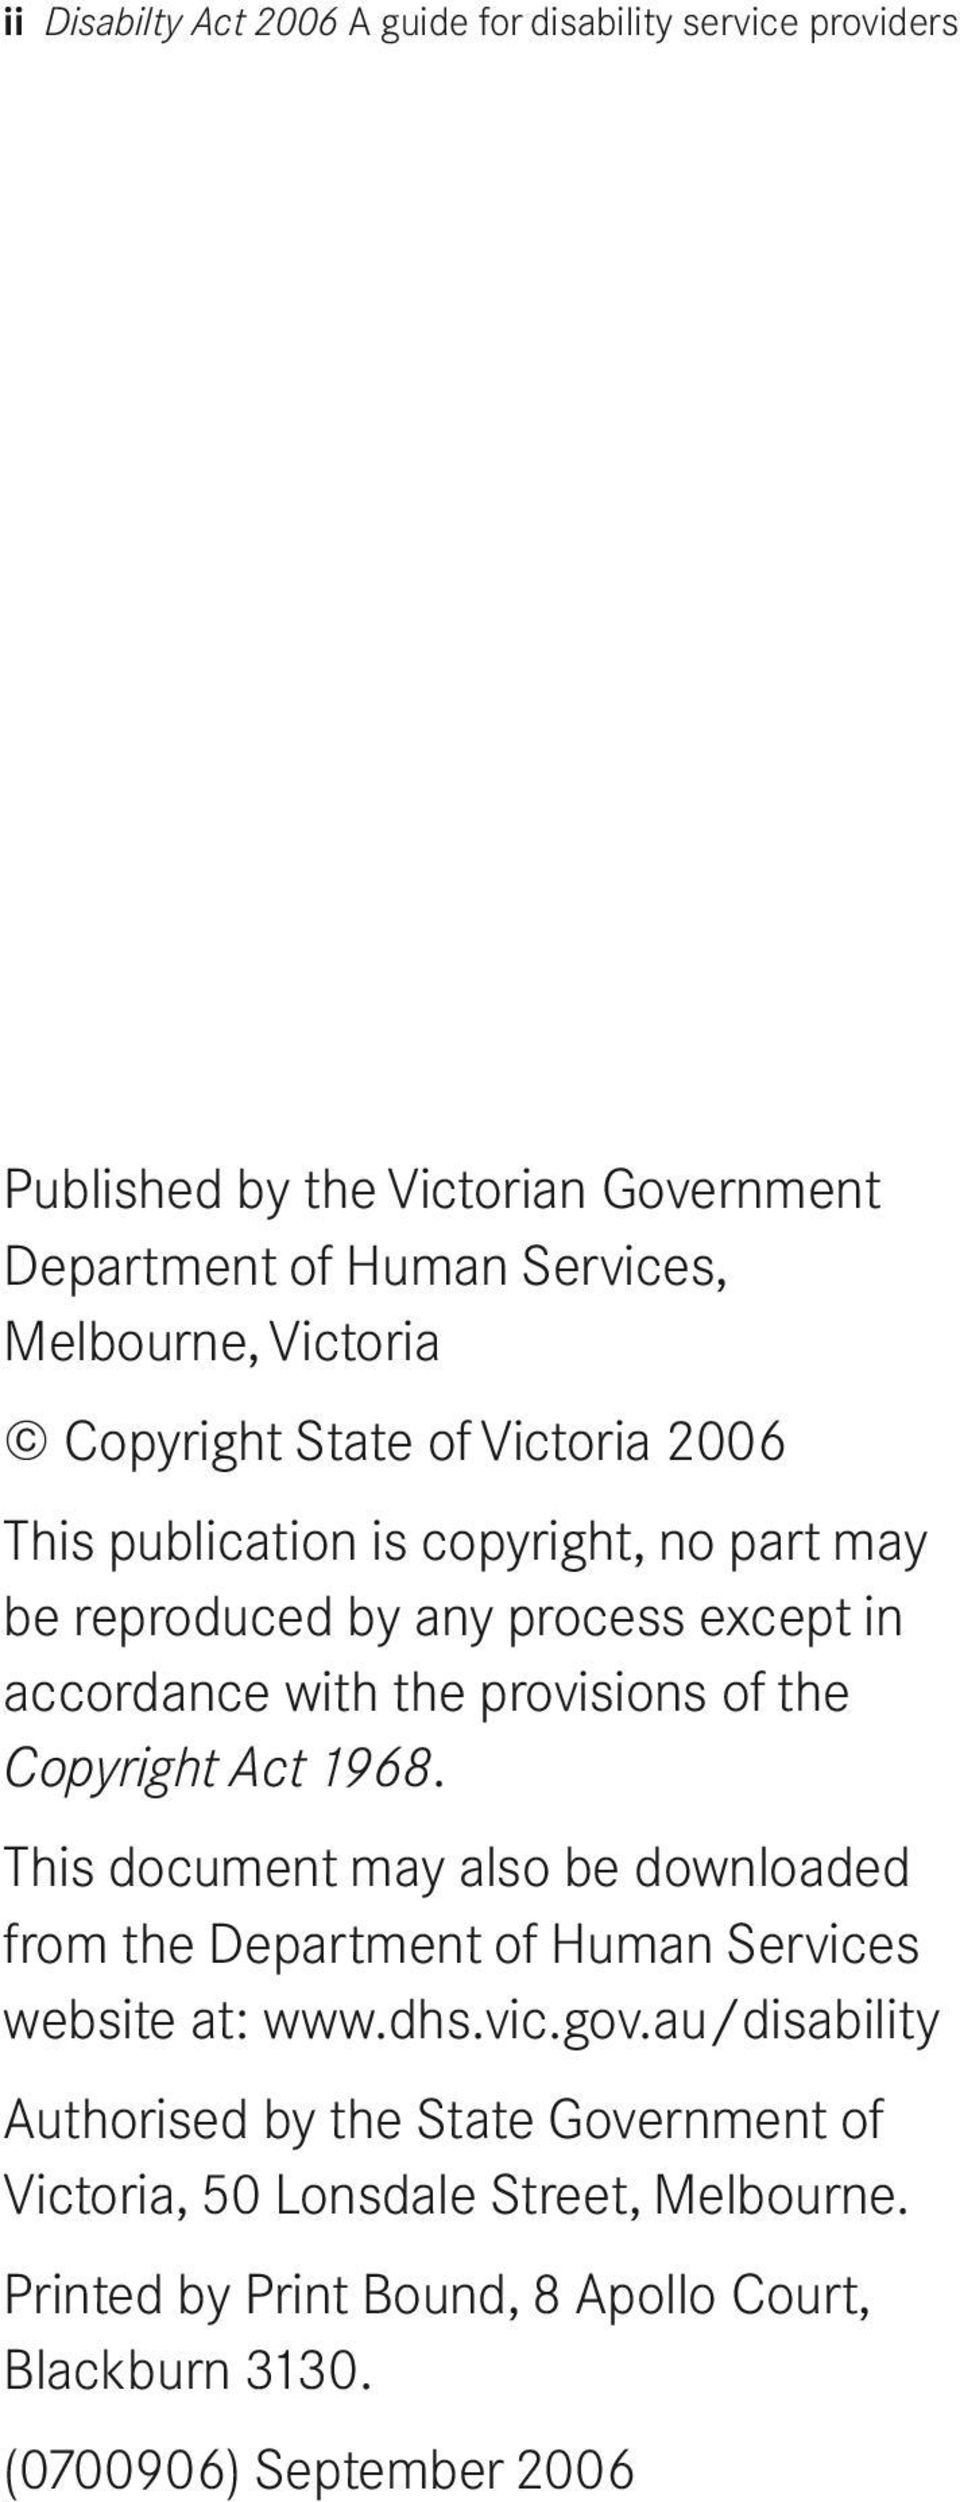 provisions of the Copyright Act 1968. This document may also be downloaded from the Department of Human Services website at: www.dhs.vic.gov.